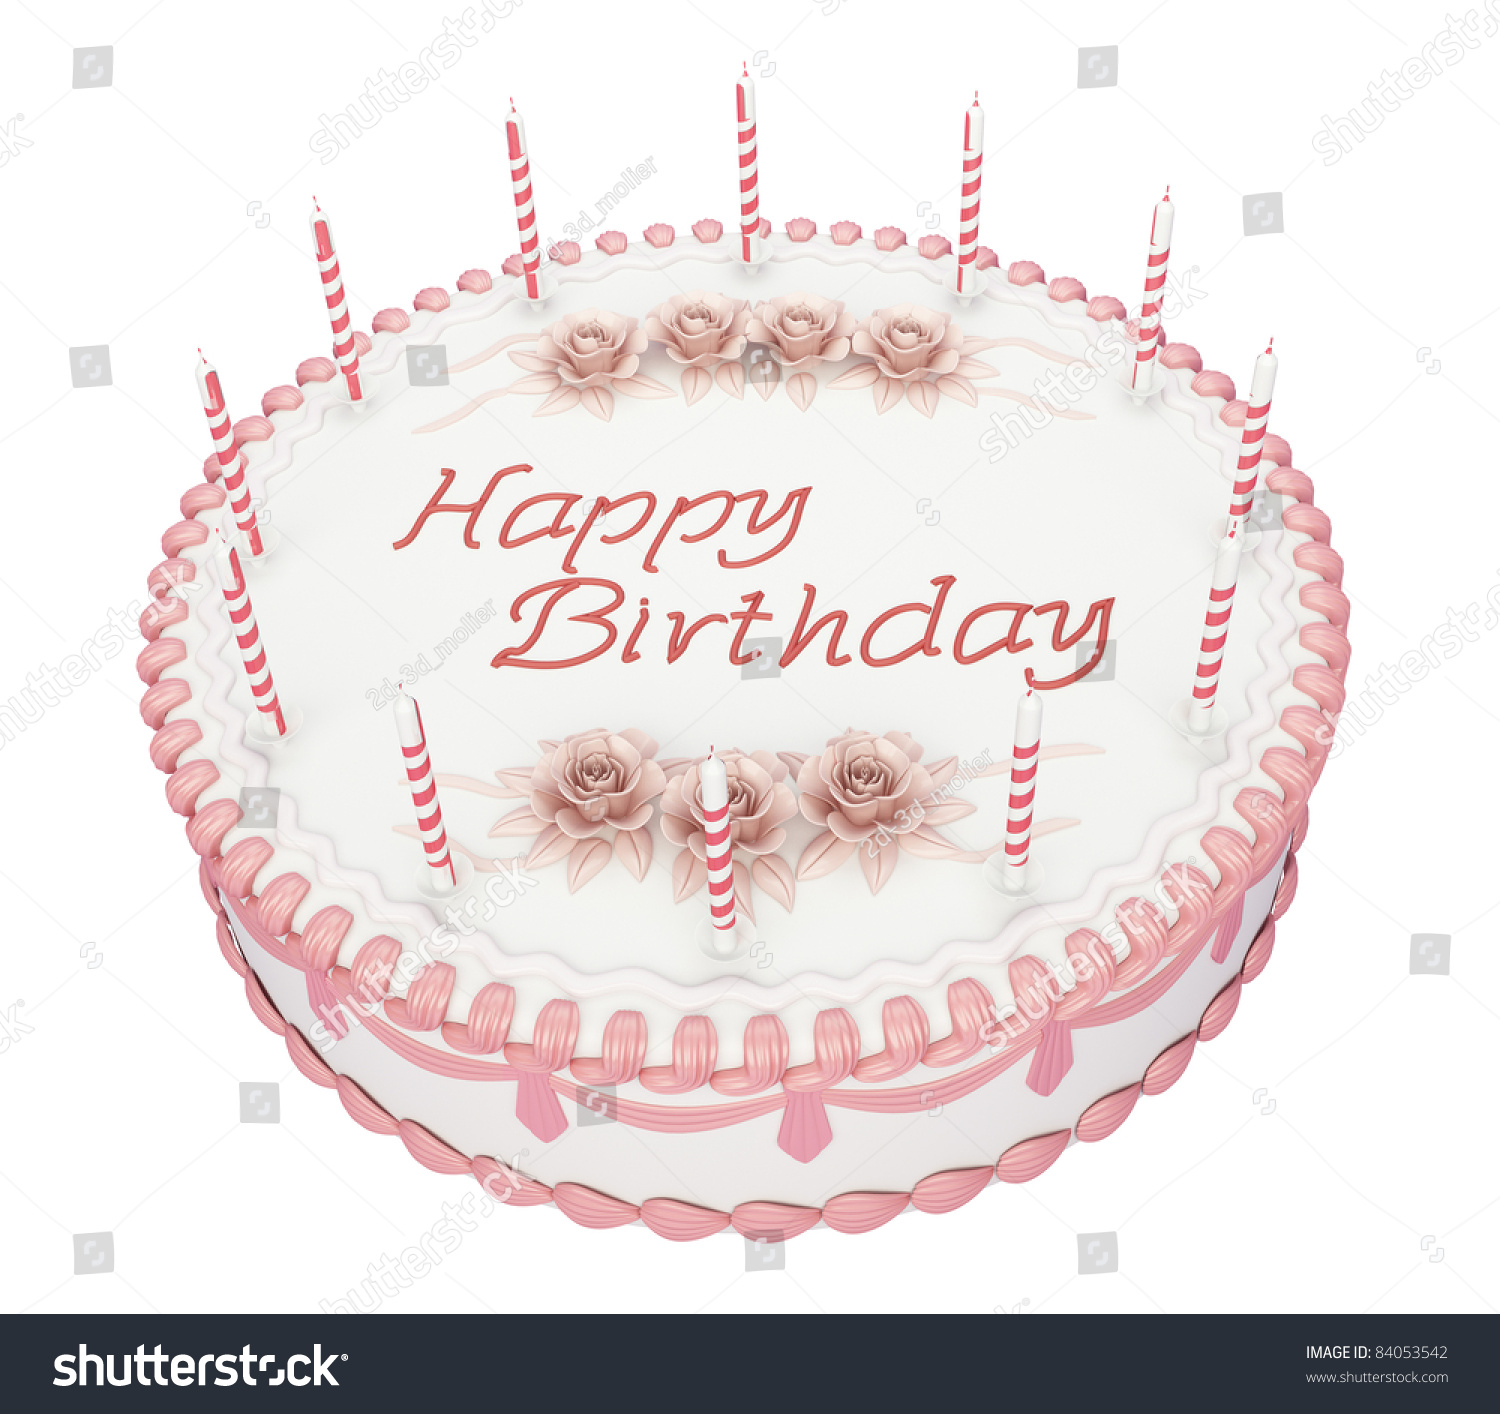 Birthday Cake Candles Roses Greetings Words Stock Illustration - Words on cake for birthday